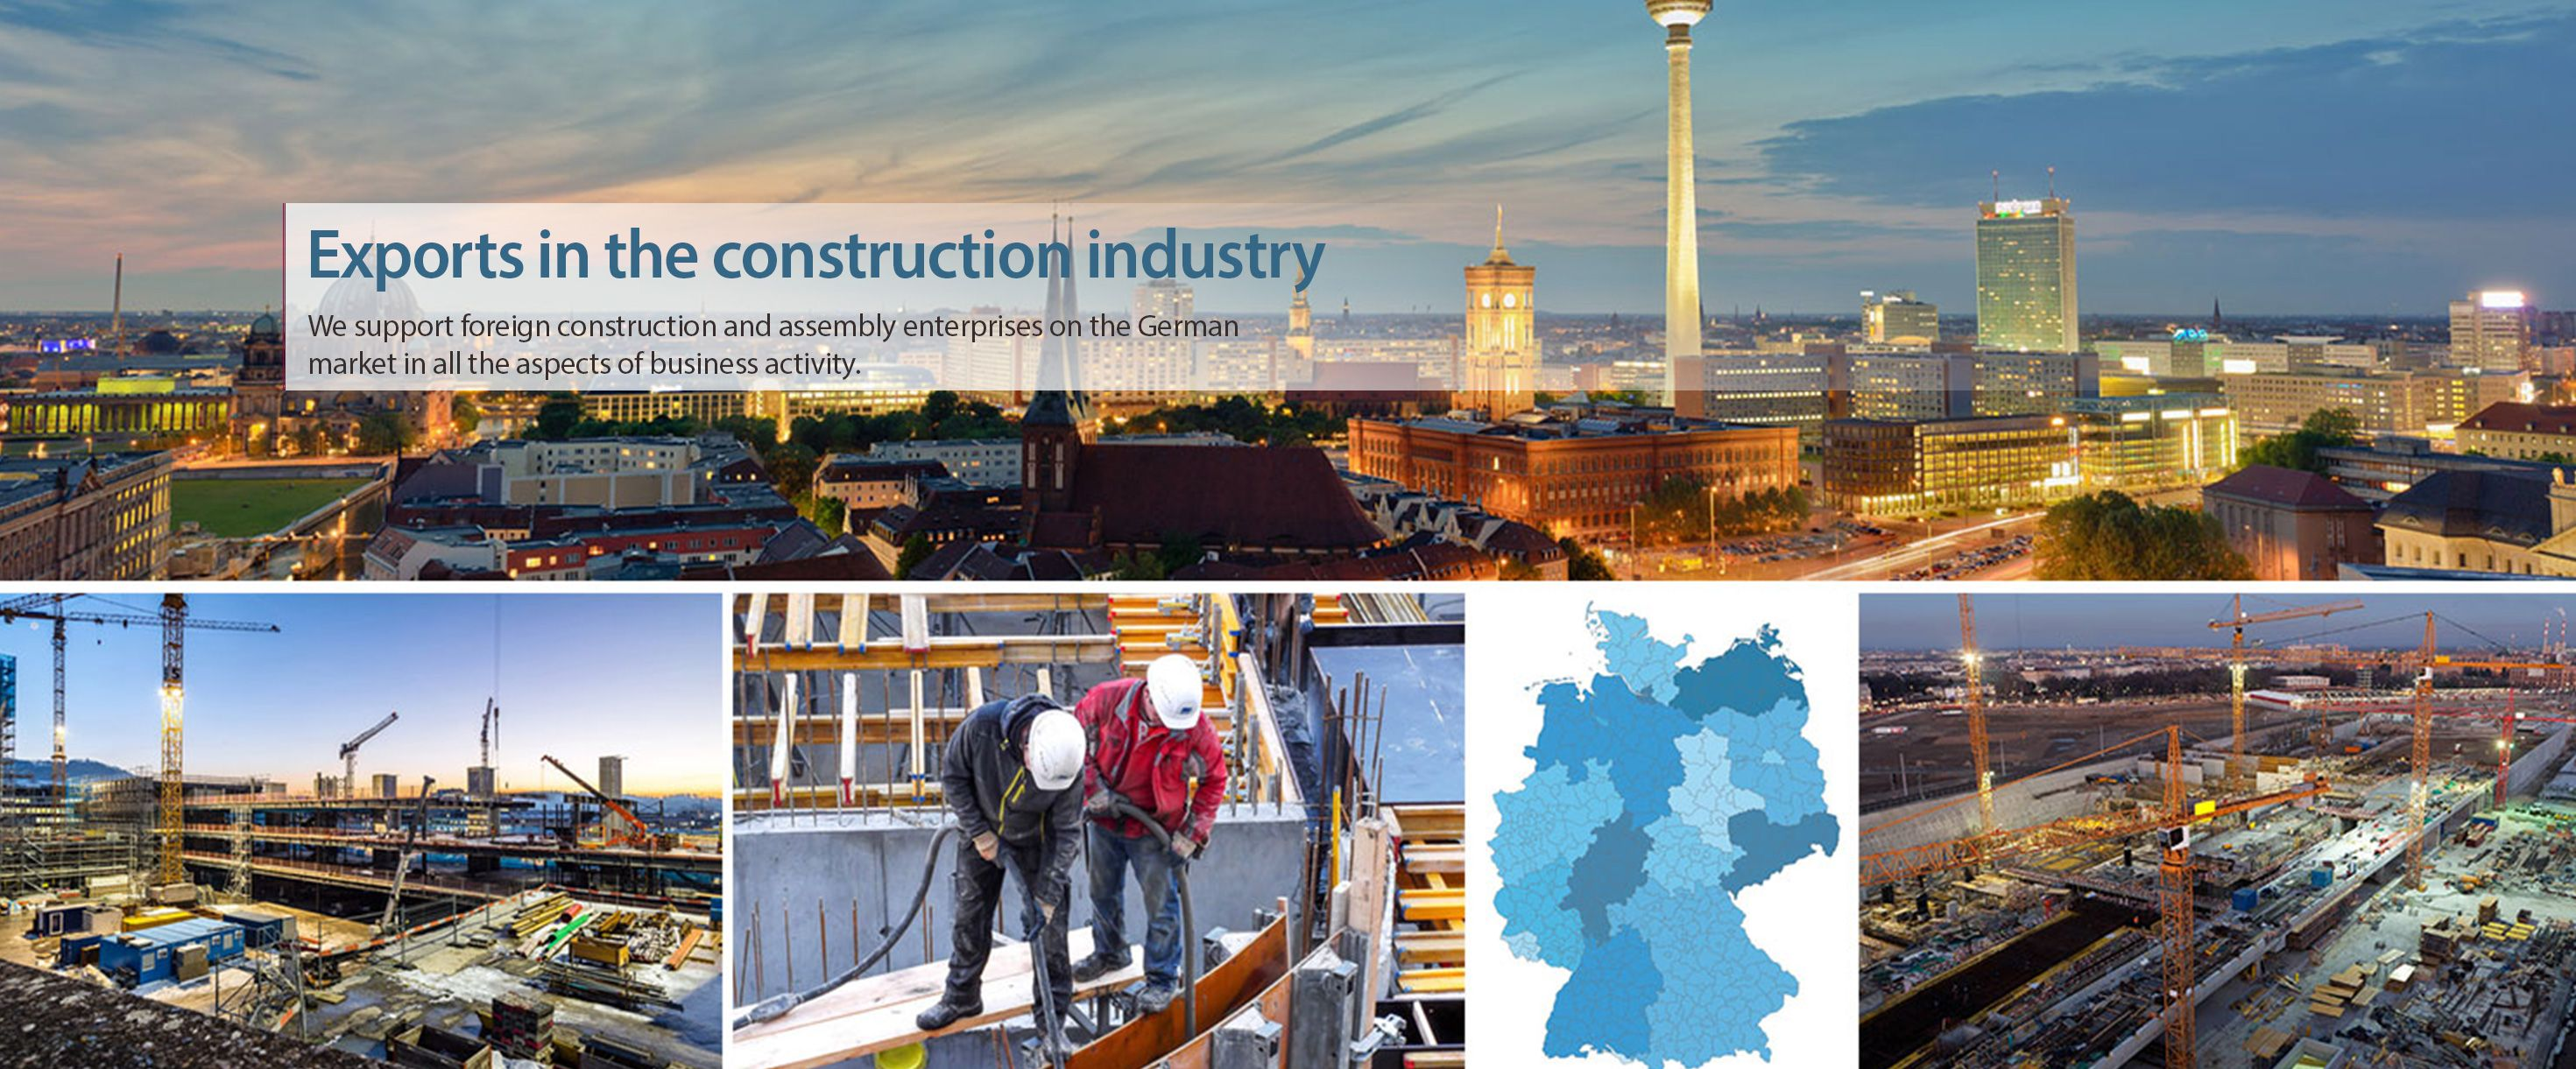 Exports in the construction industry